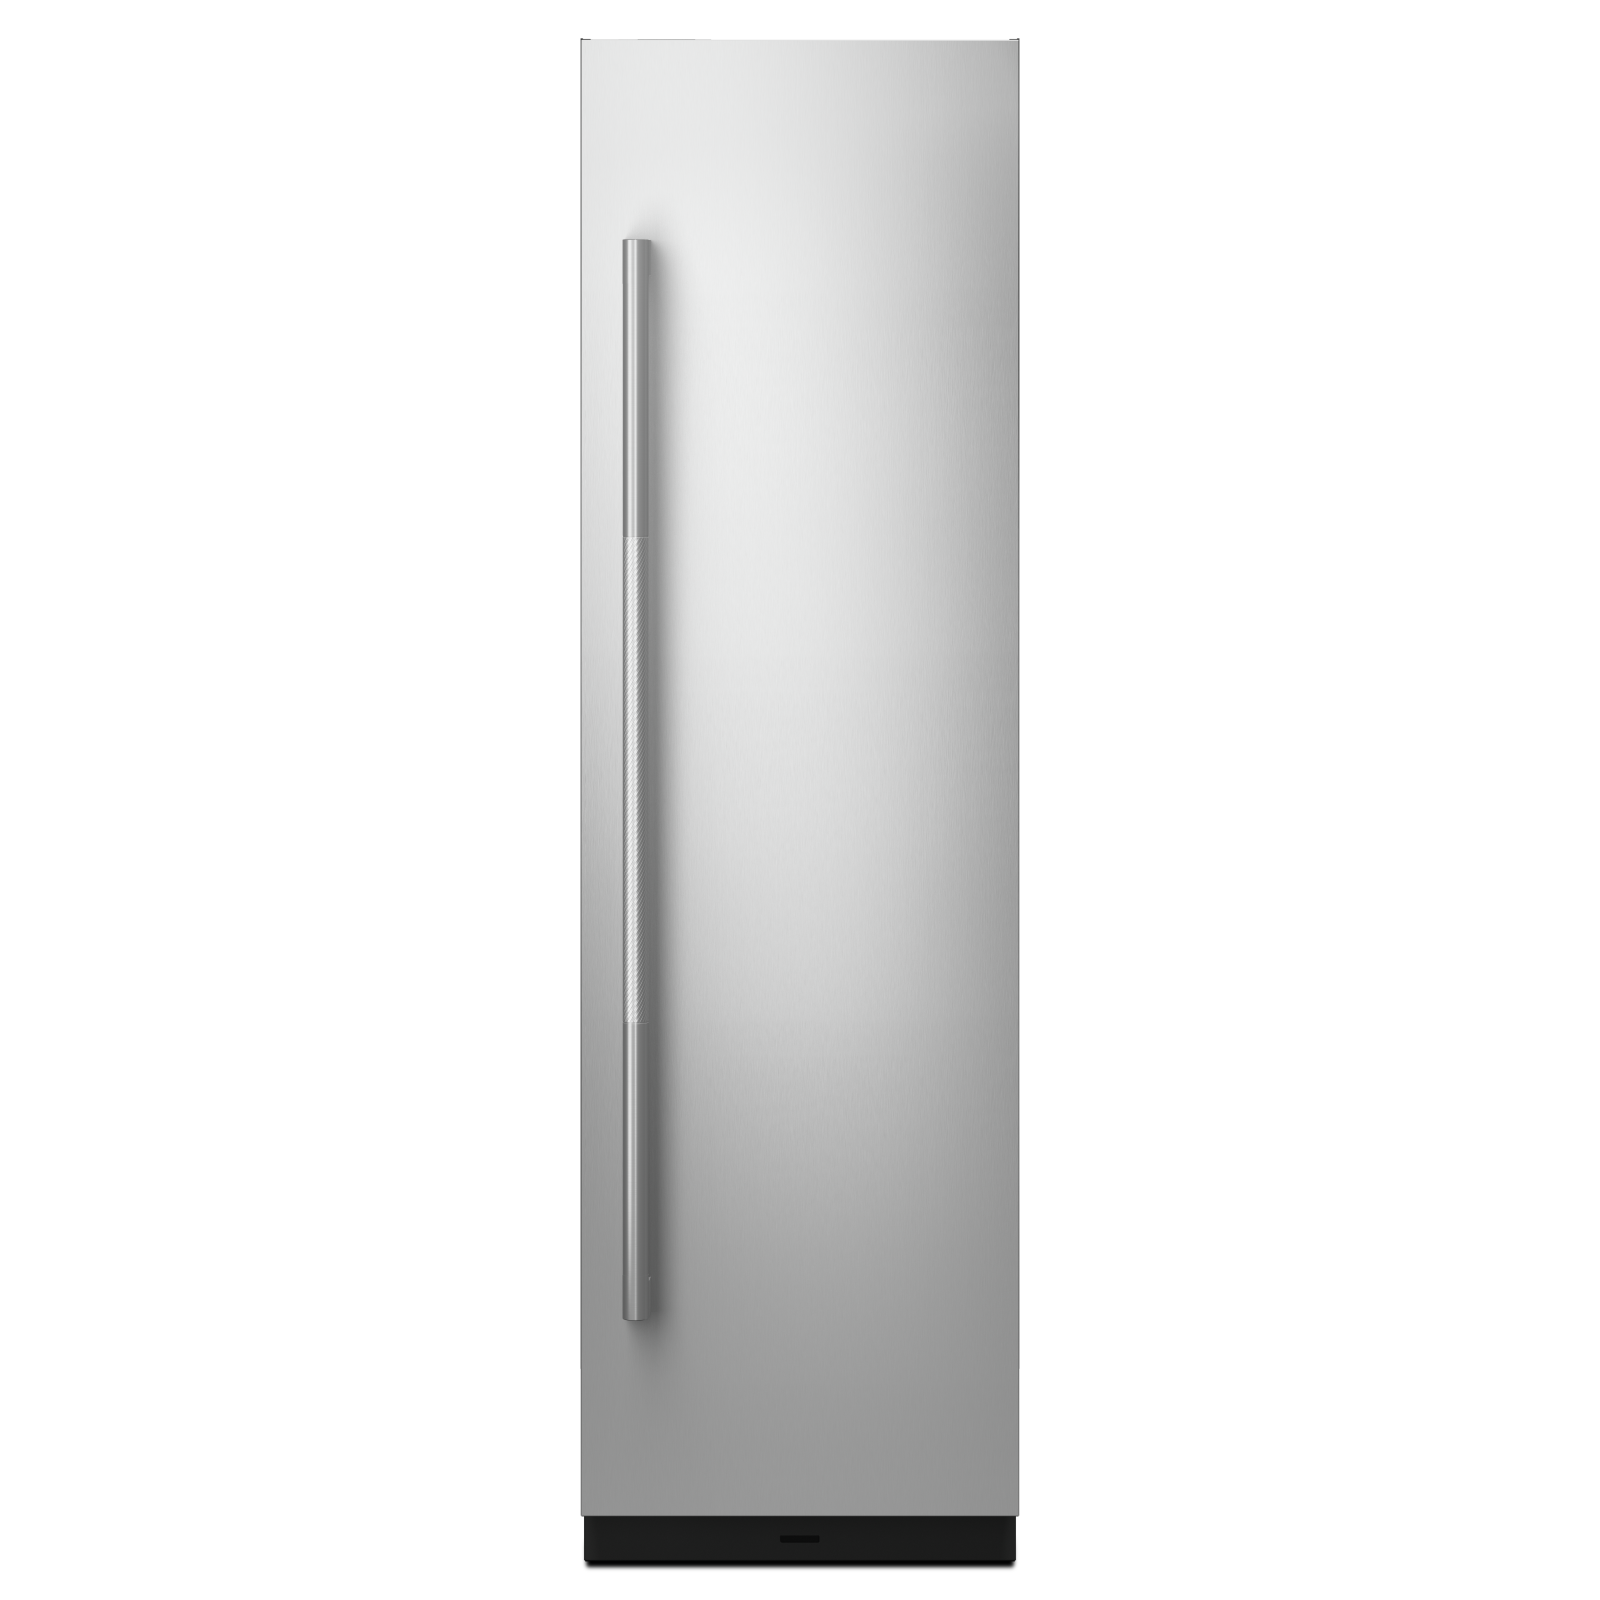 Jenn Air Accessory in Stainless Steel color showcased by Corbeil Electro Store